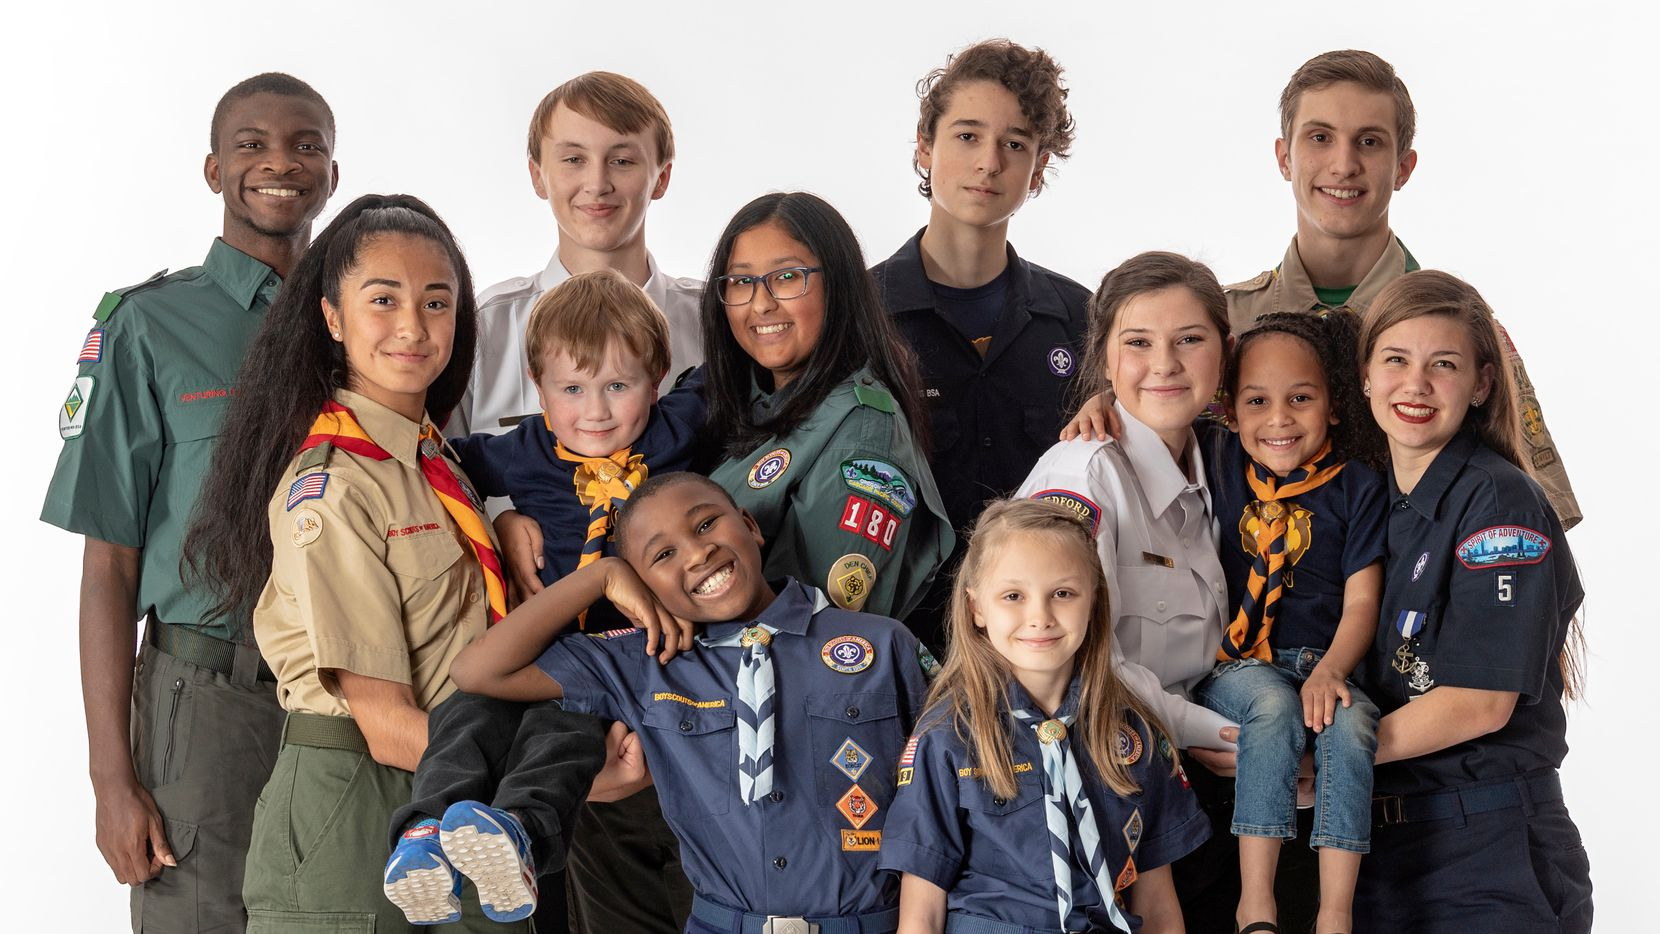 A group of young people from the Boy Scouts of America pose together for a group photo.